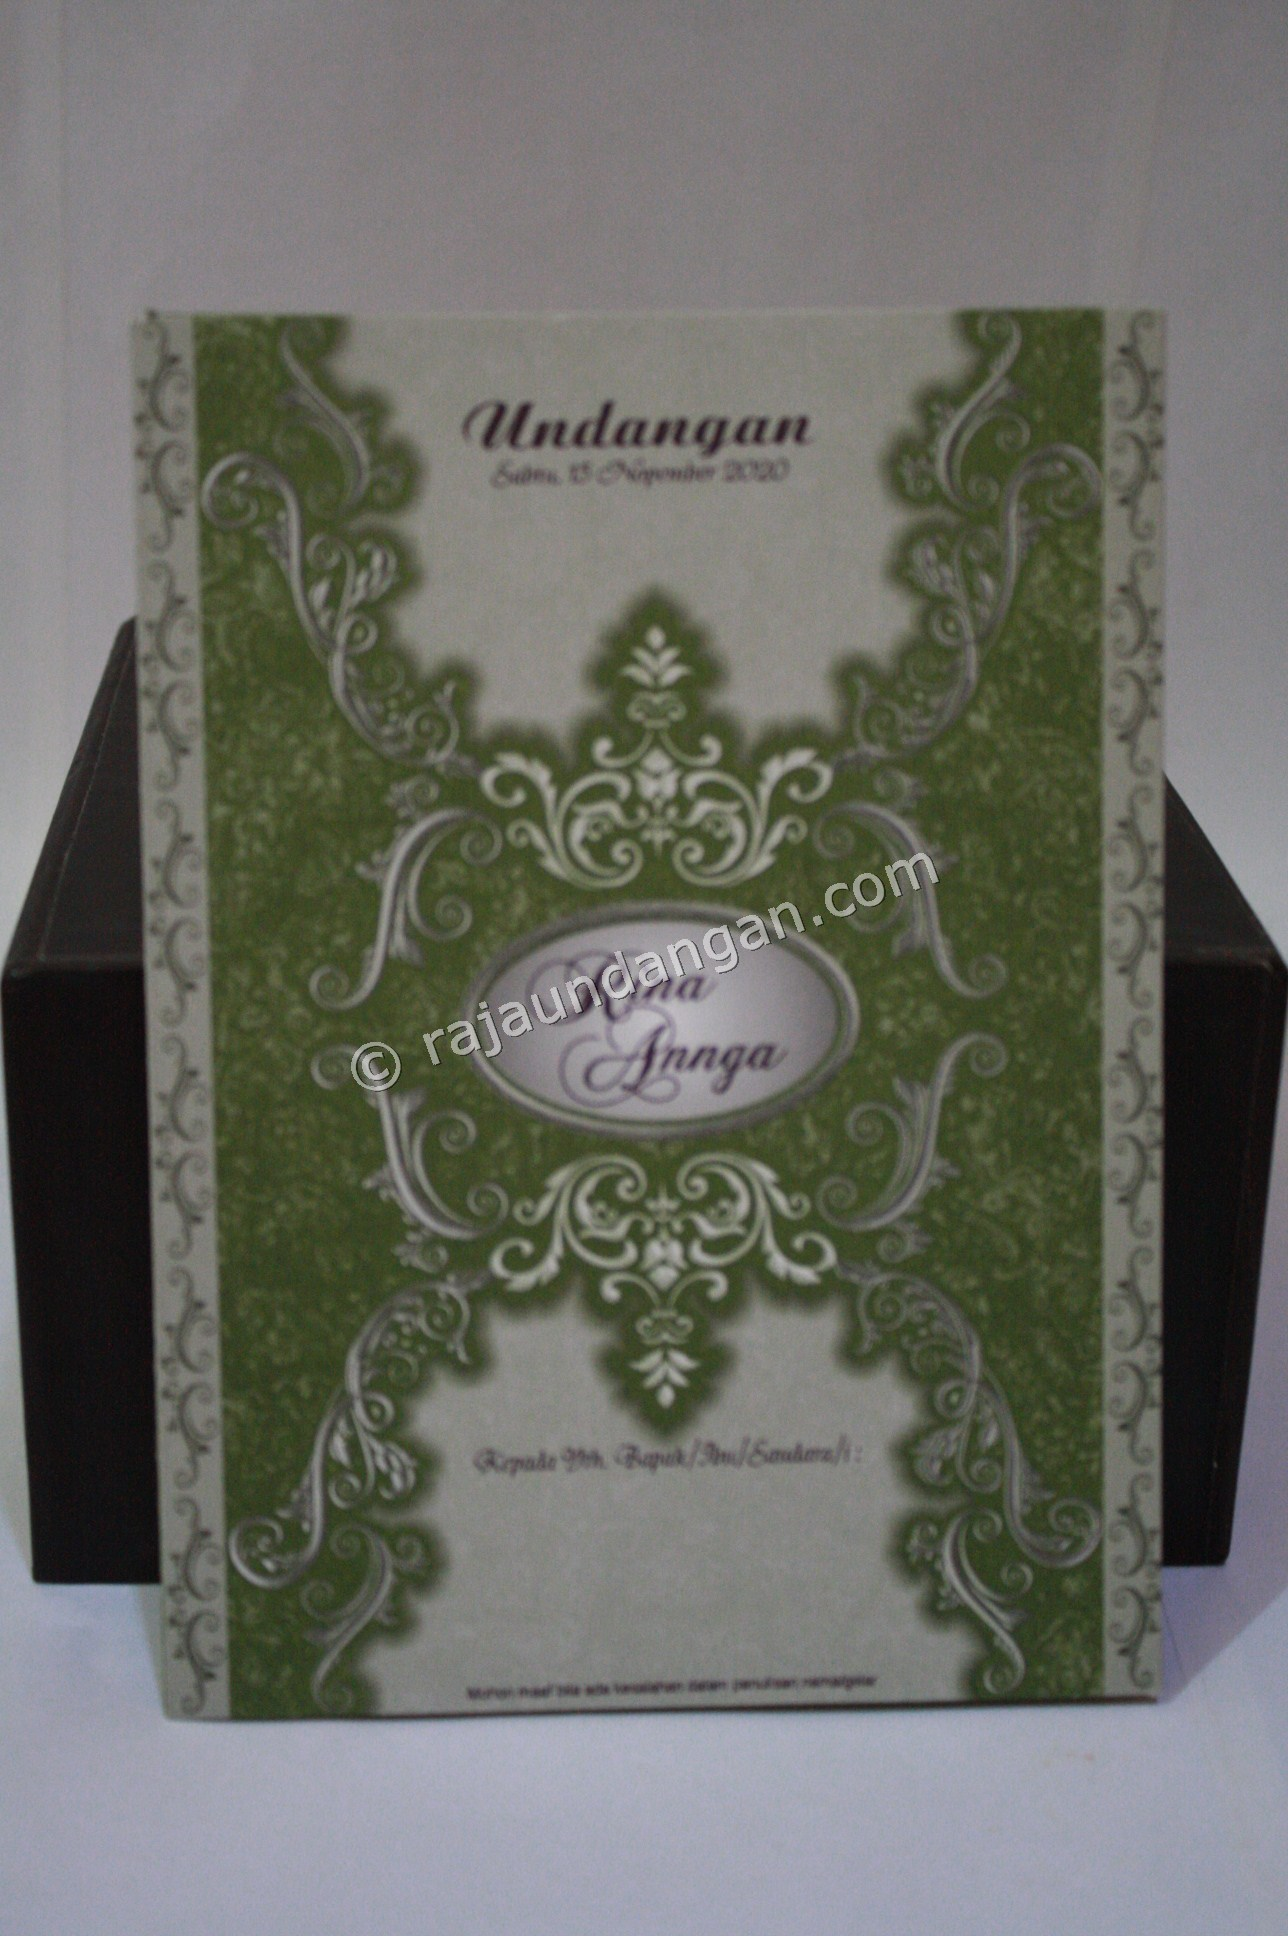 Undangan Pernikahan Softcover Rina dan Angga 1 - Membuat Wedding Invitations Unik dan Simple di Sawahan